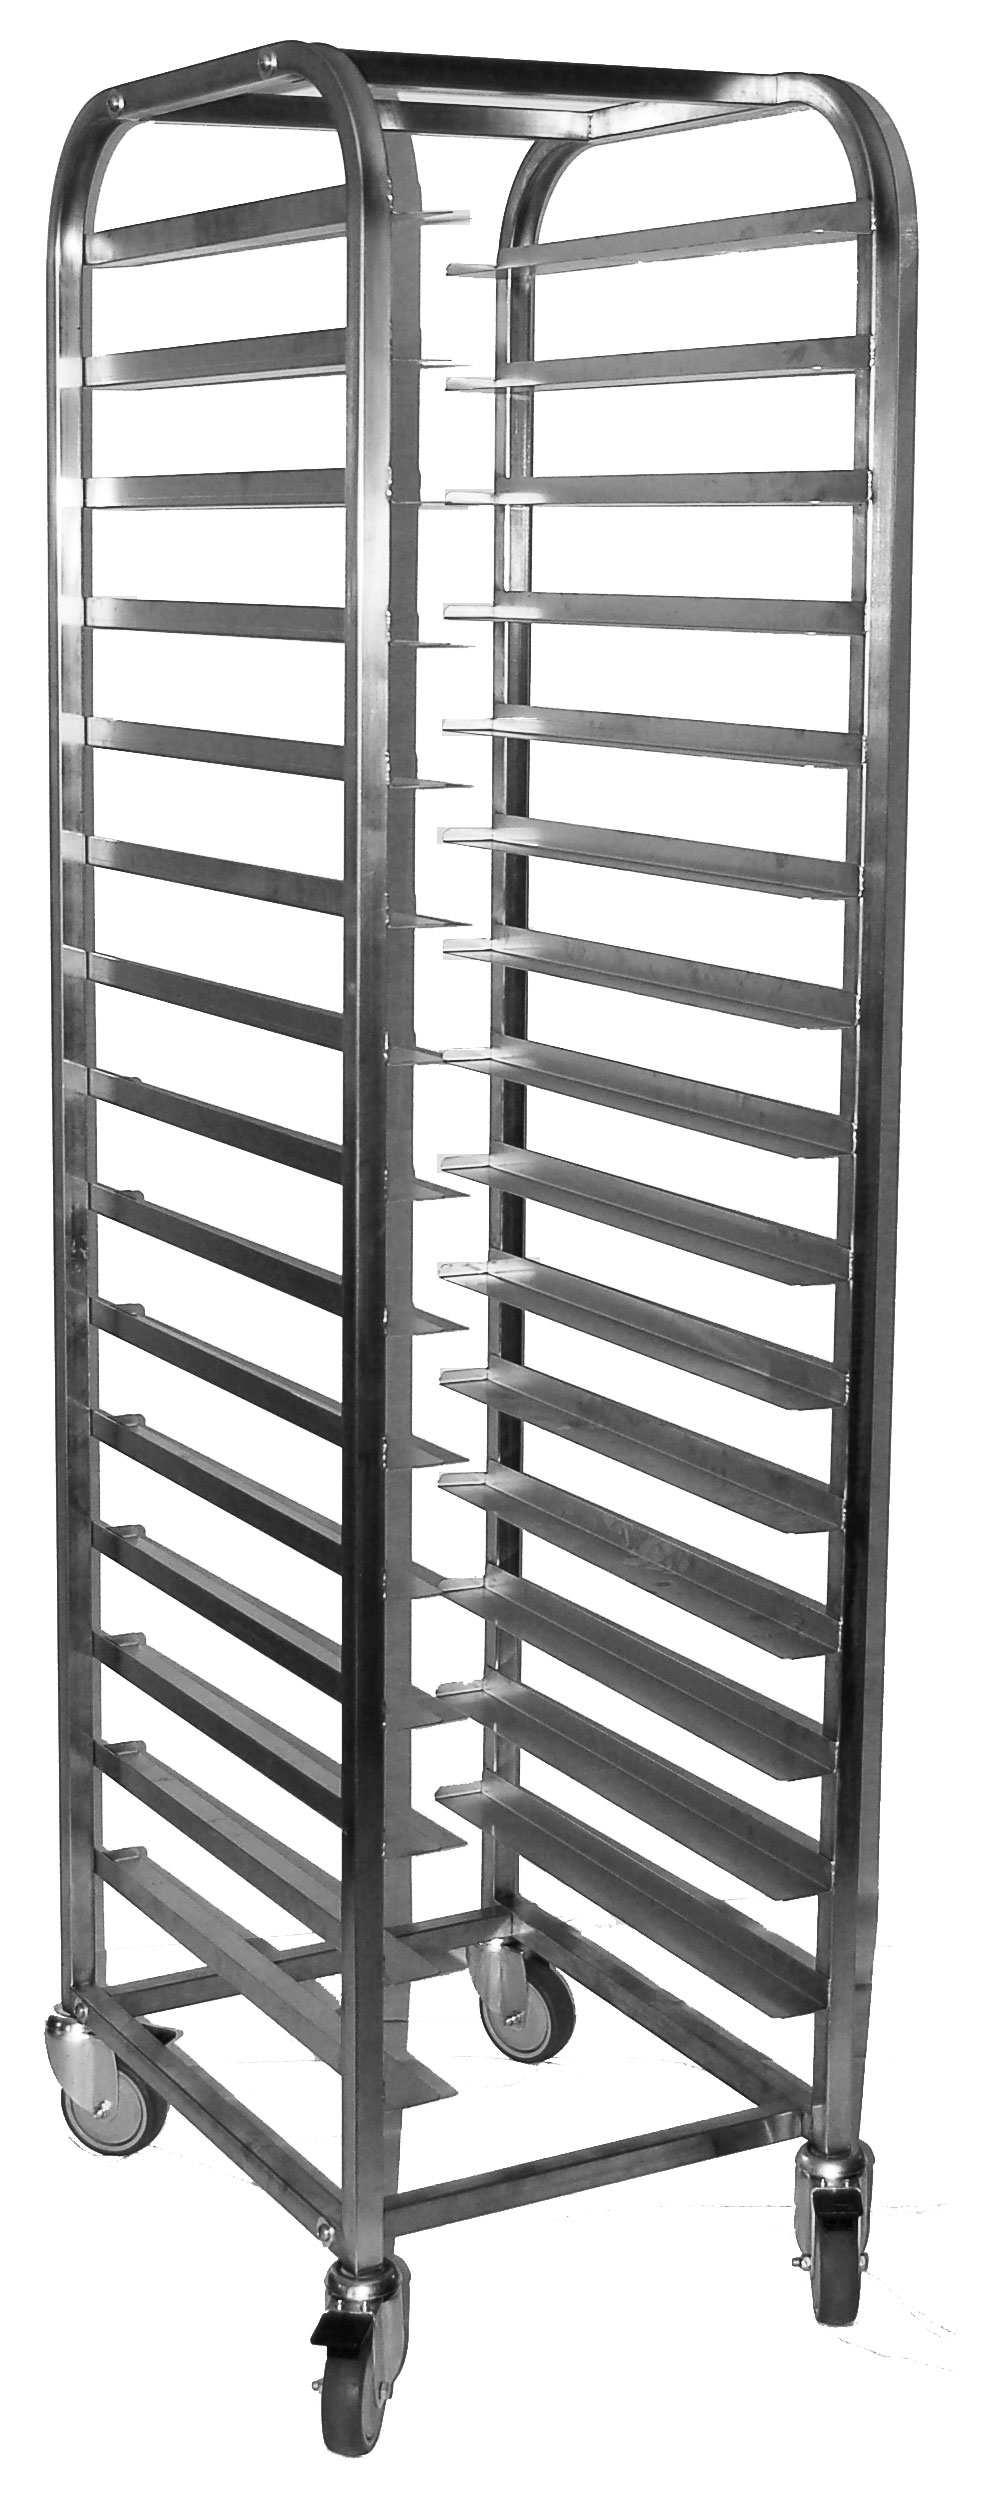 MOBILE TRAY TROLLEY S/STEEL - 15 SHELVES